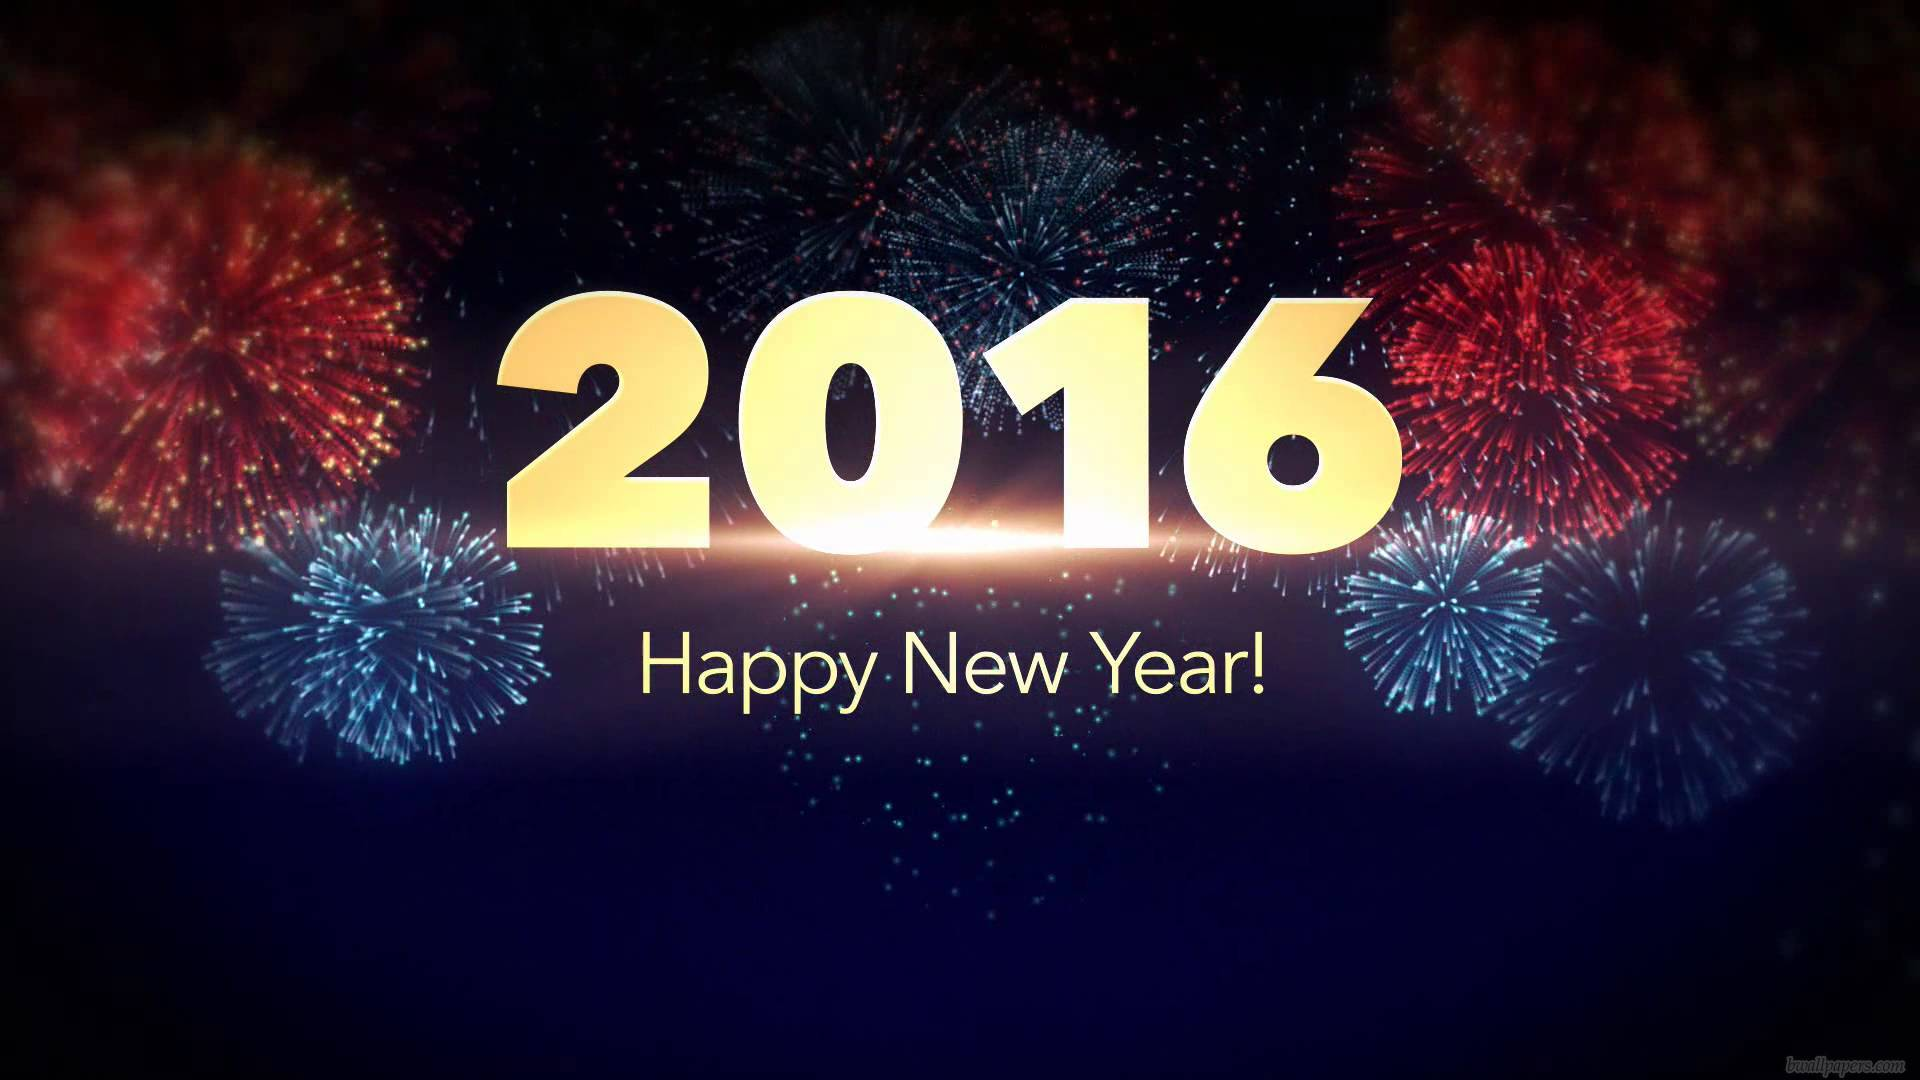 2016 happy new year wallpaper high definition high